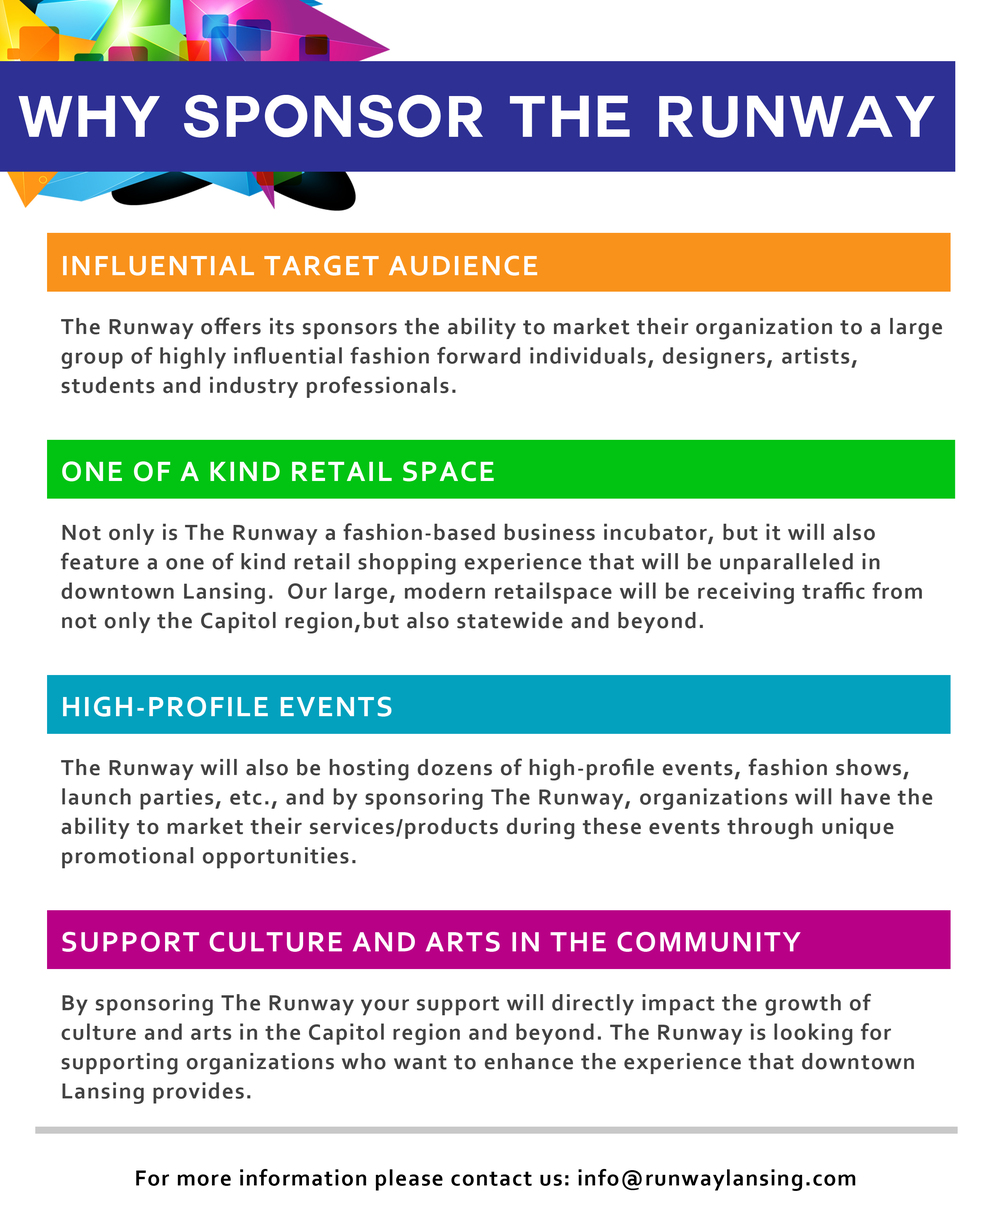 Sponsorkit - Why Sponsor The Runway.jpg